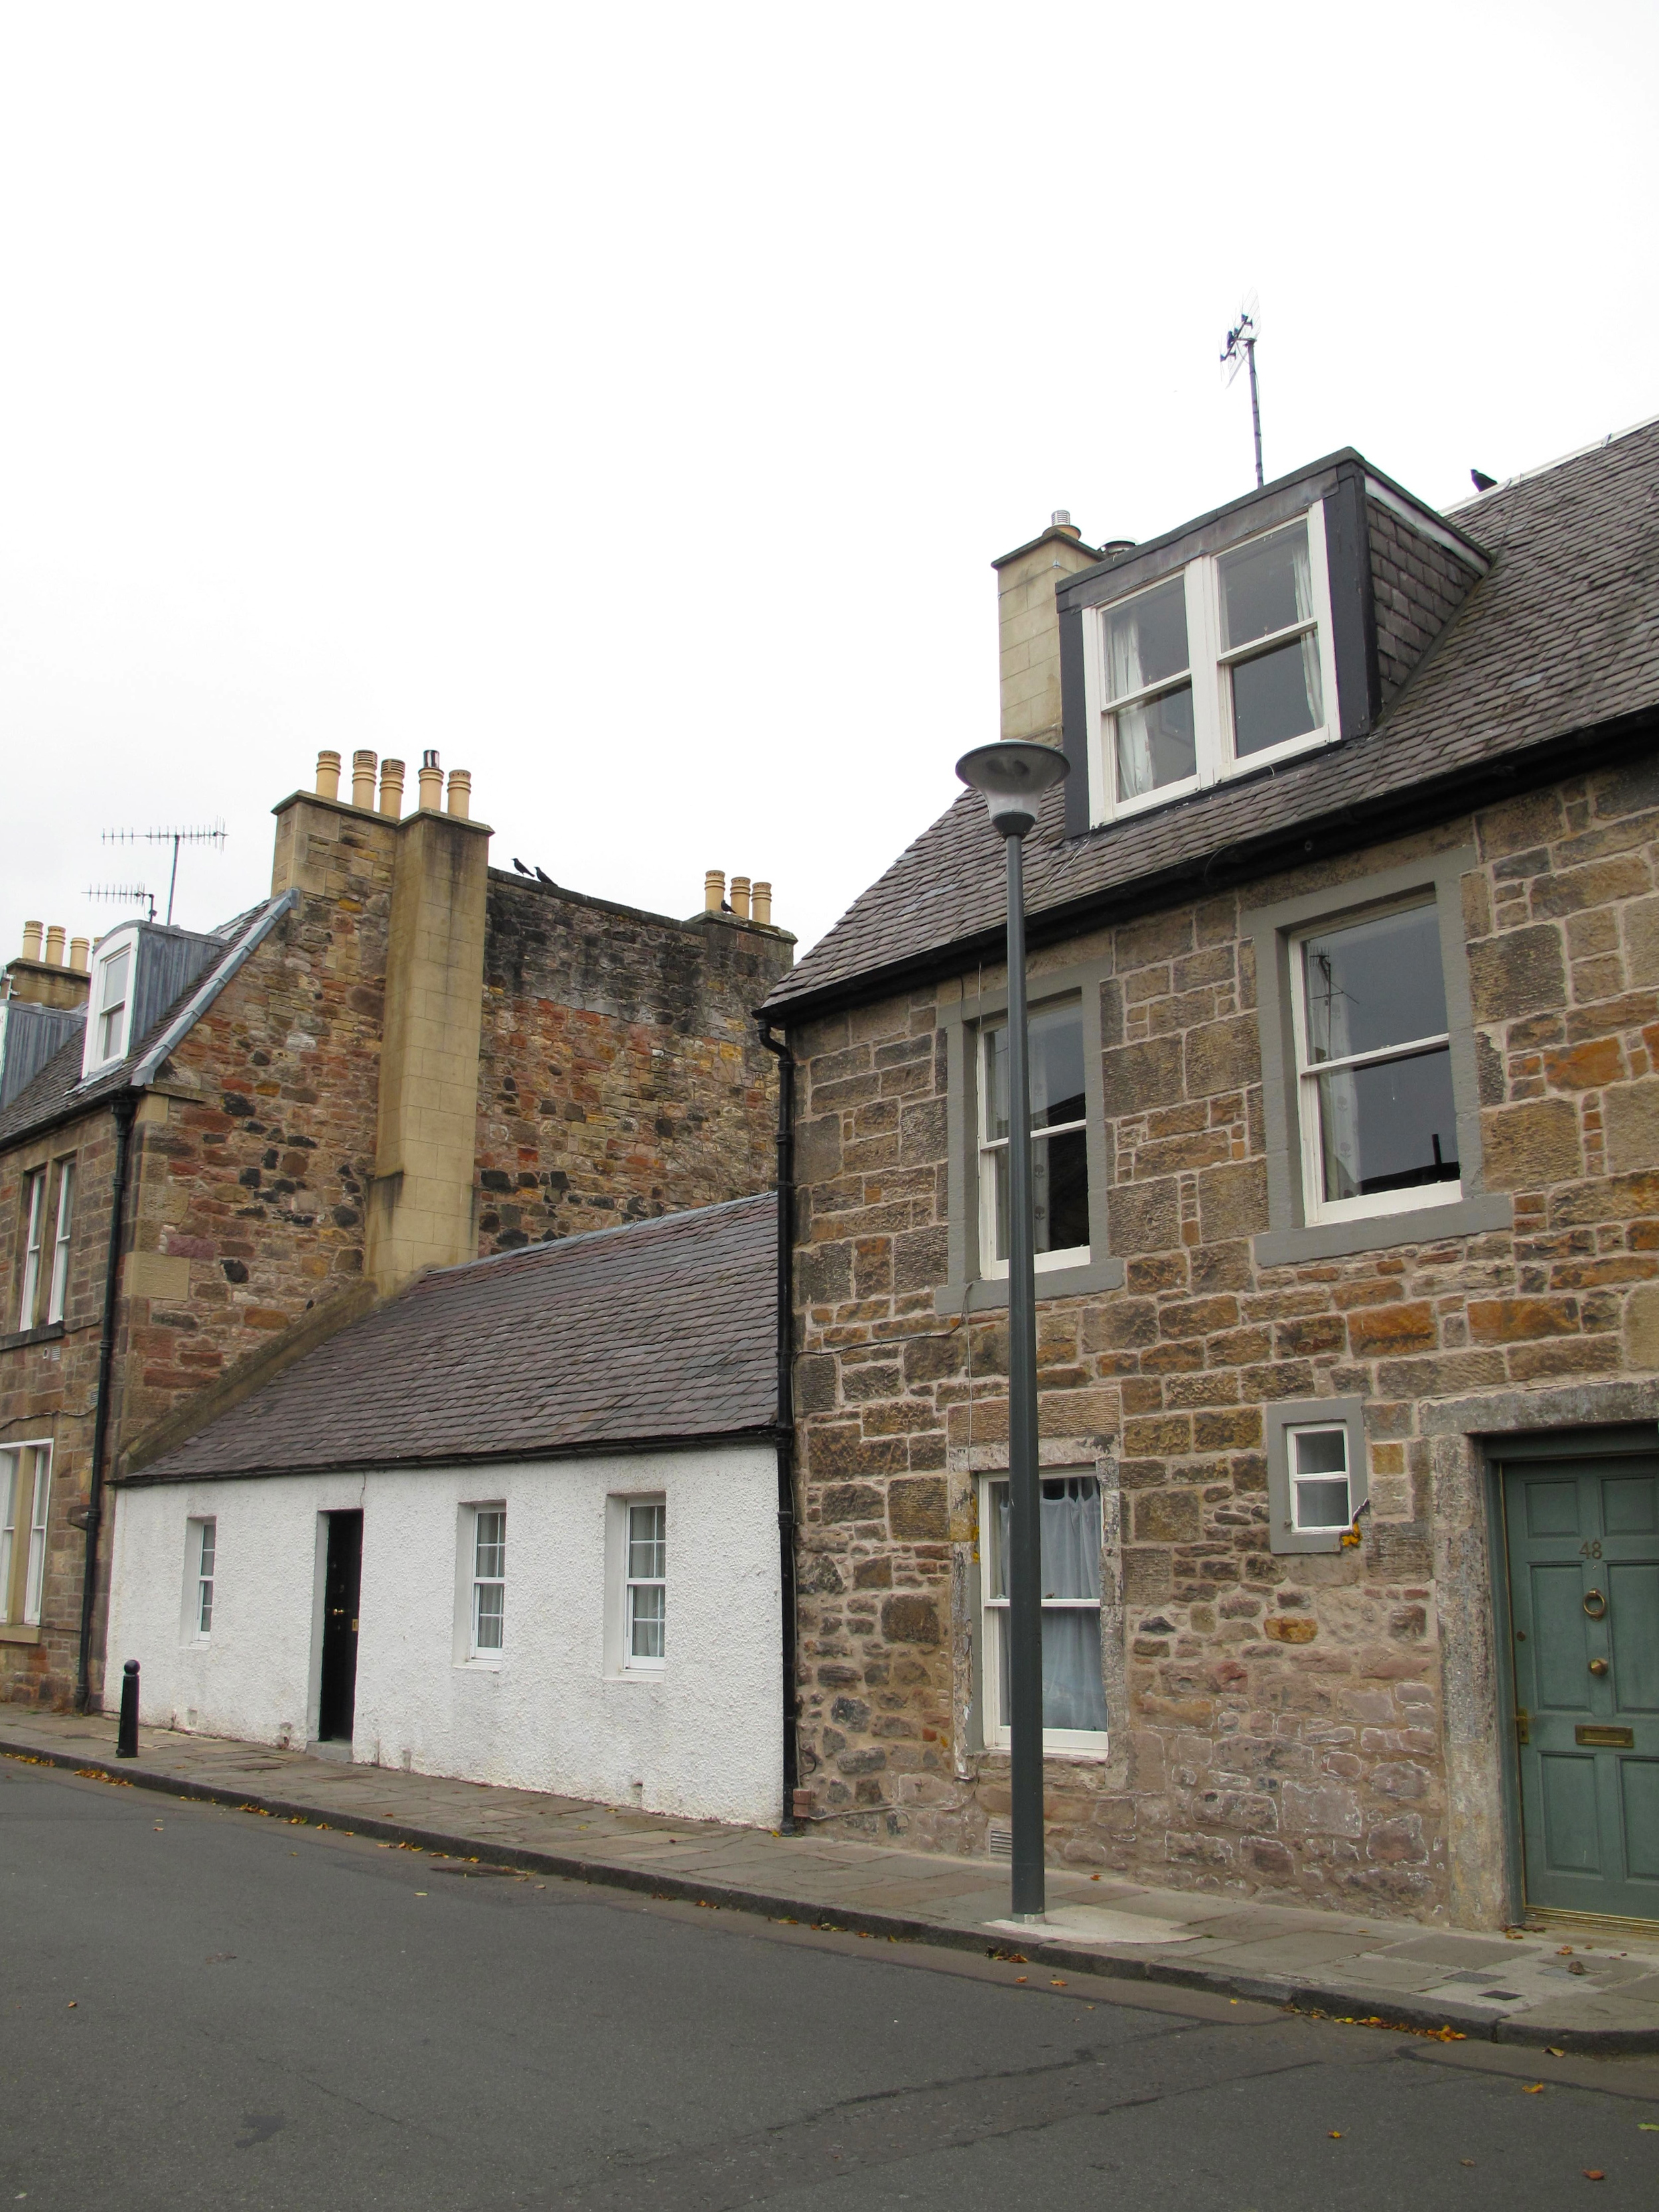 Duddingston Village houses - little stone houses in Scottish style.